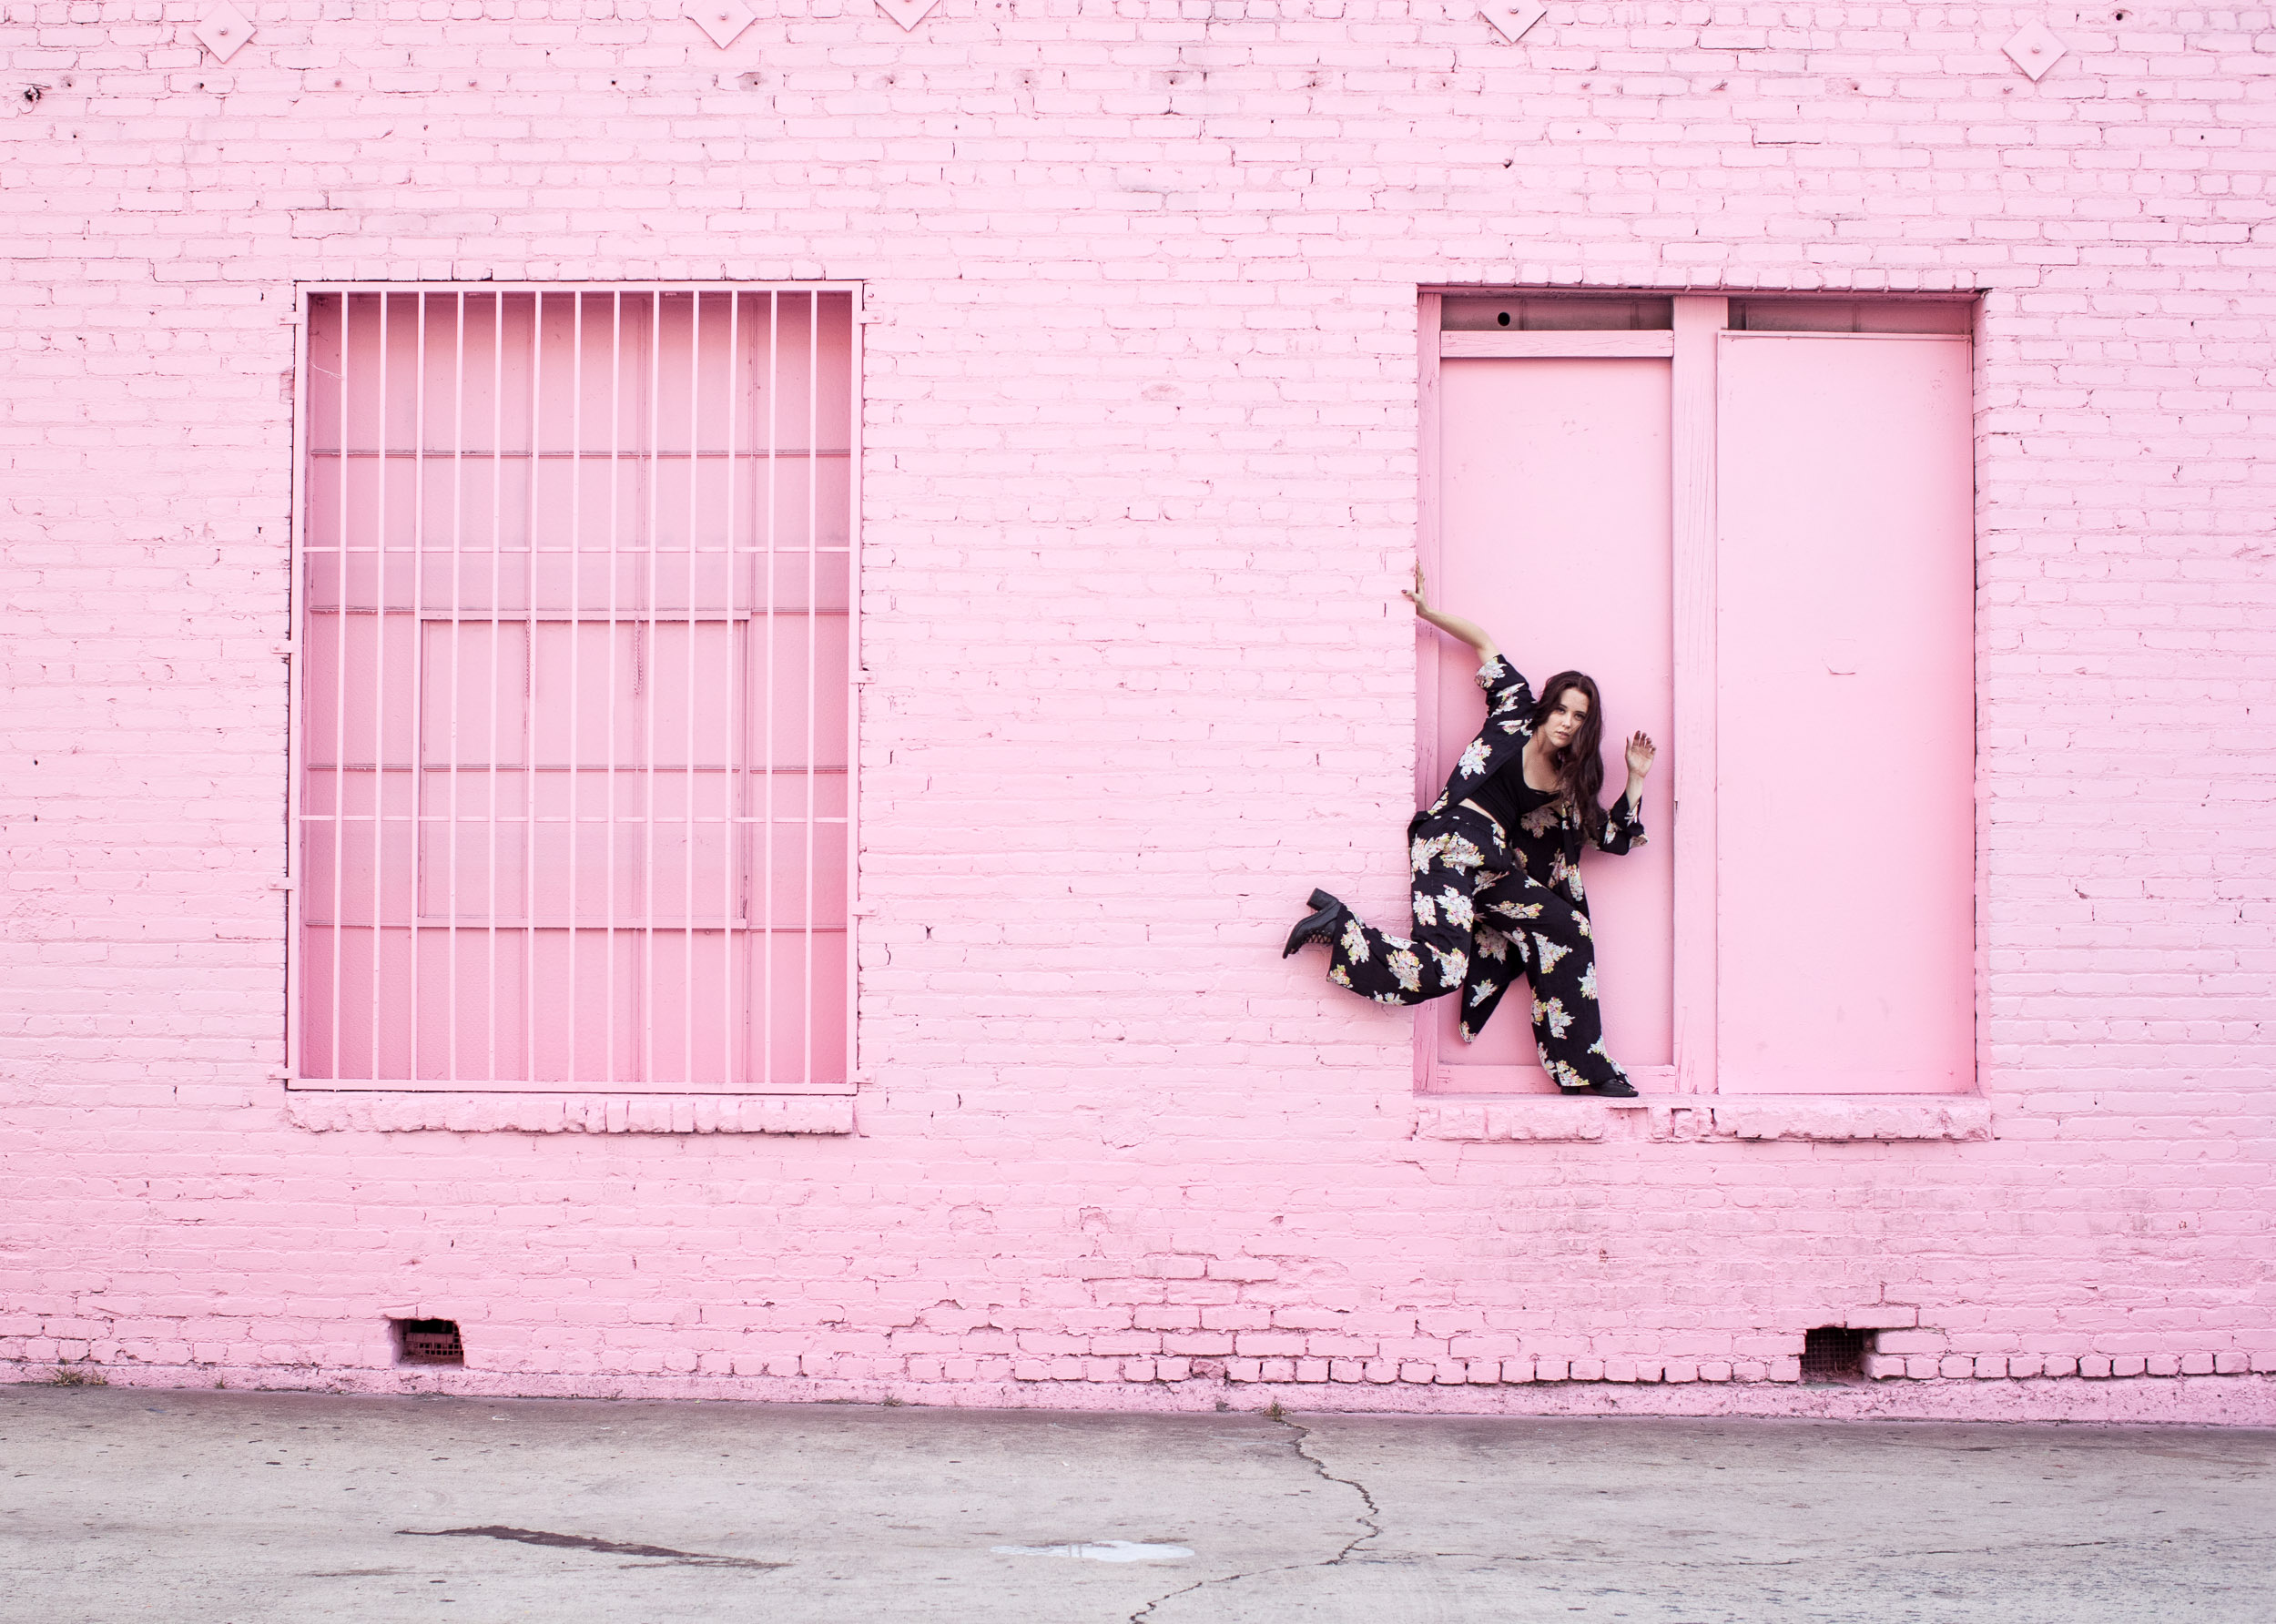 pink wall finiancial district los angeles dancer ice cream museum window Justine Lutz photographer Ashley Barker